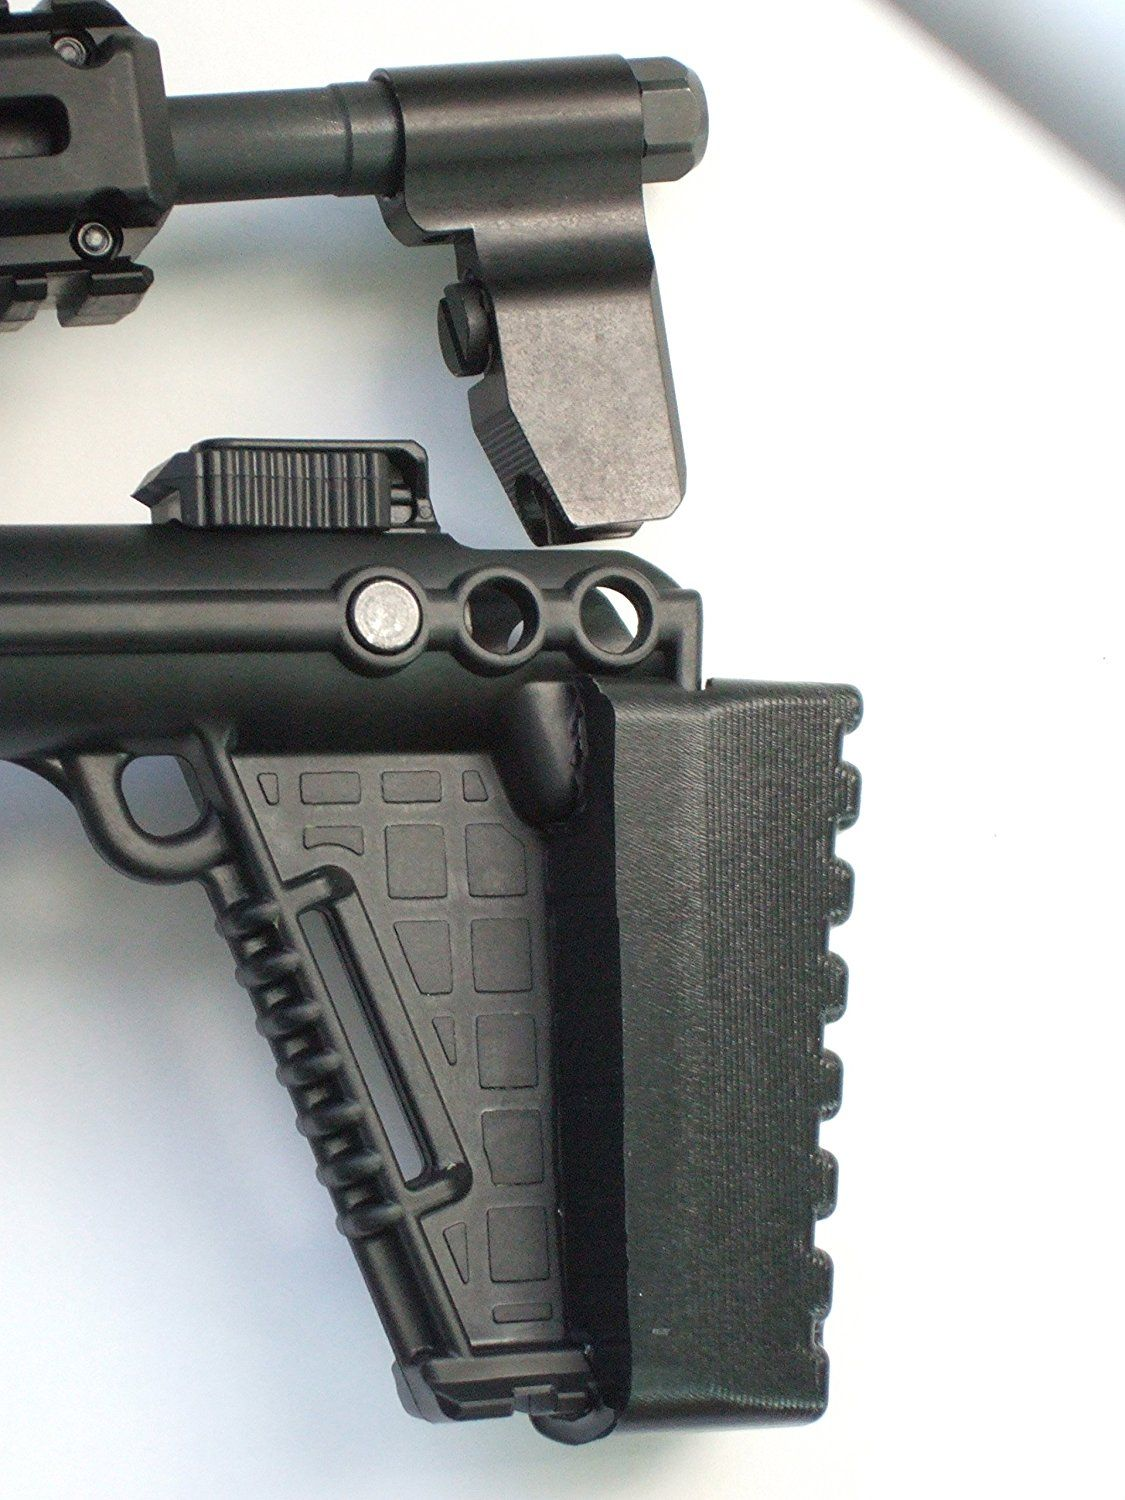 """Amazon.com : Custom Recoil Pad """"Gen 2"""" With/sight Pocket, Exclusively for the KT Sub2000 (Generation 2) Foldable Carbine. : Sports & Outdoors"""